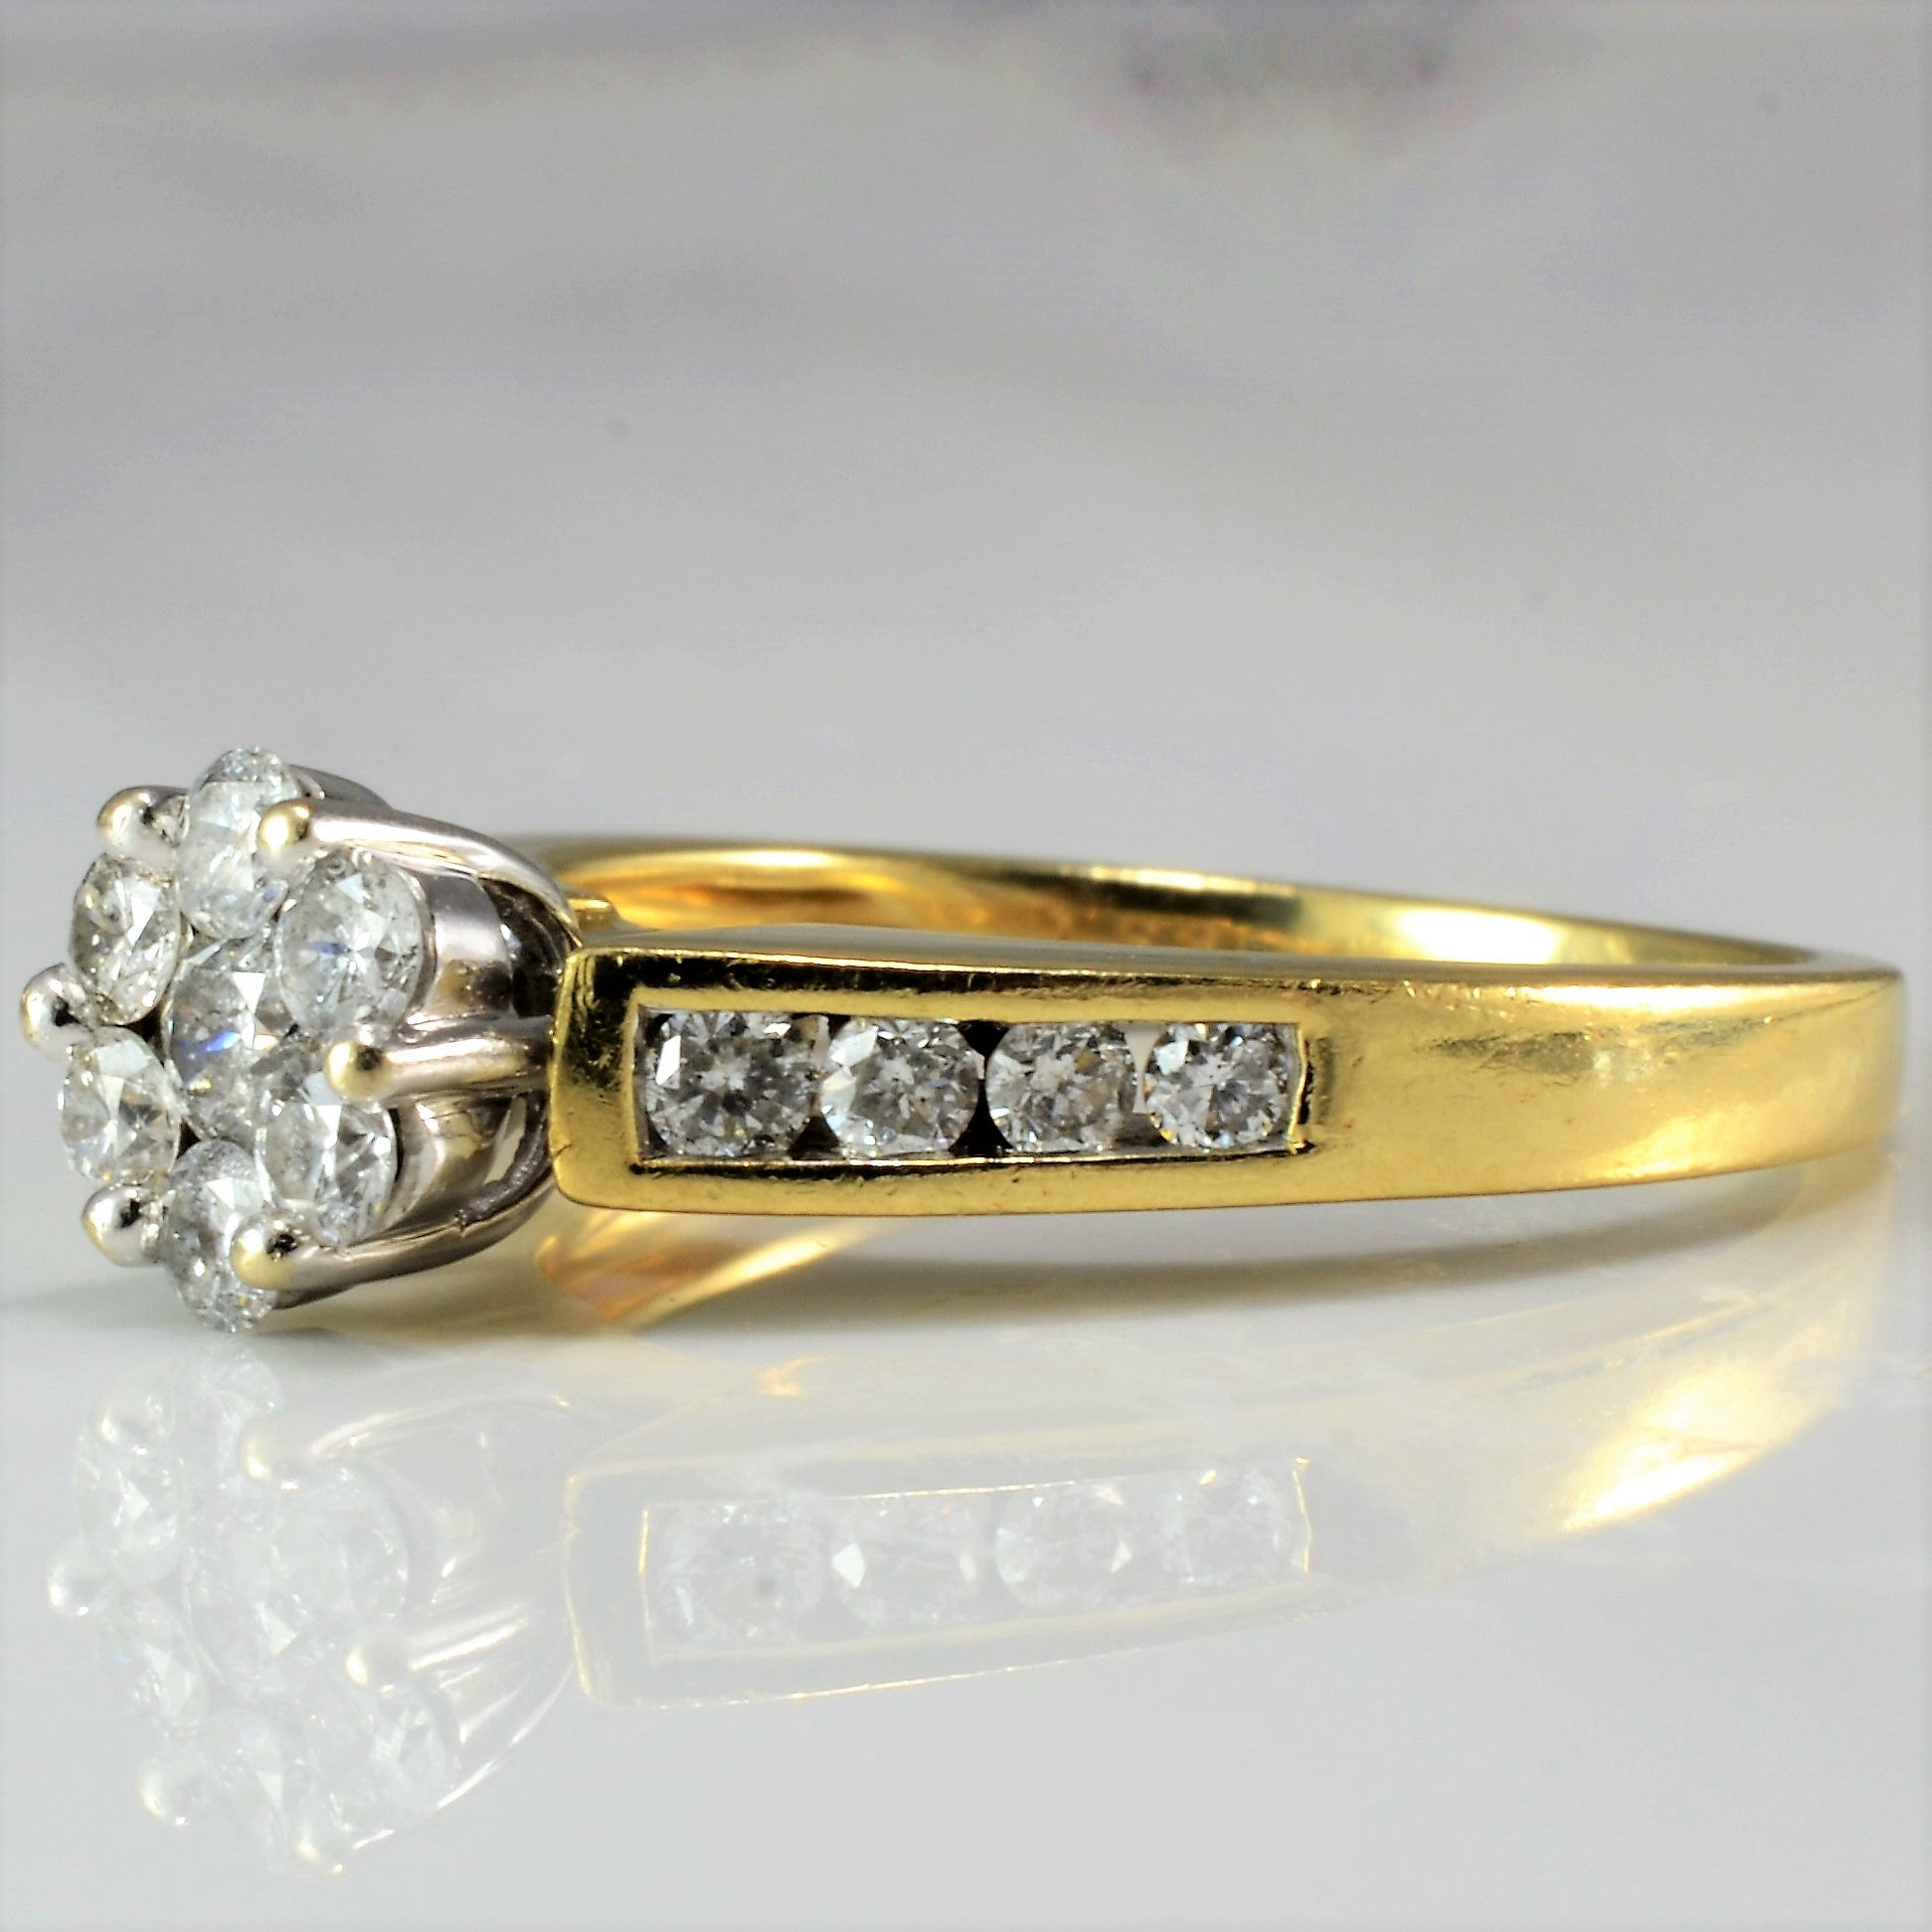 Cluster Diamond Engagement Ring | 0.55 ctw, SZ 7 |